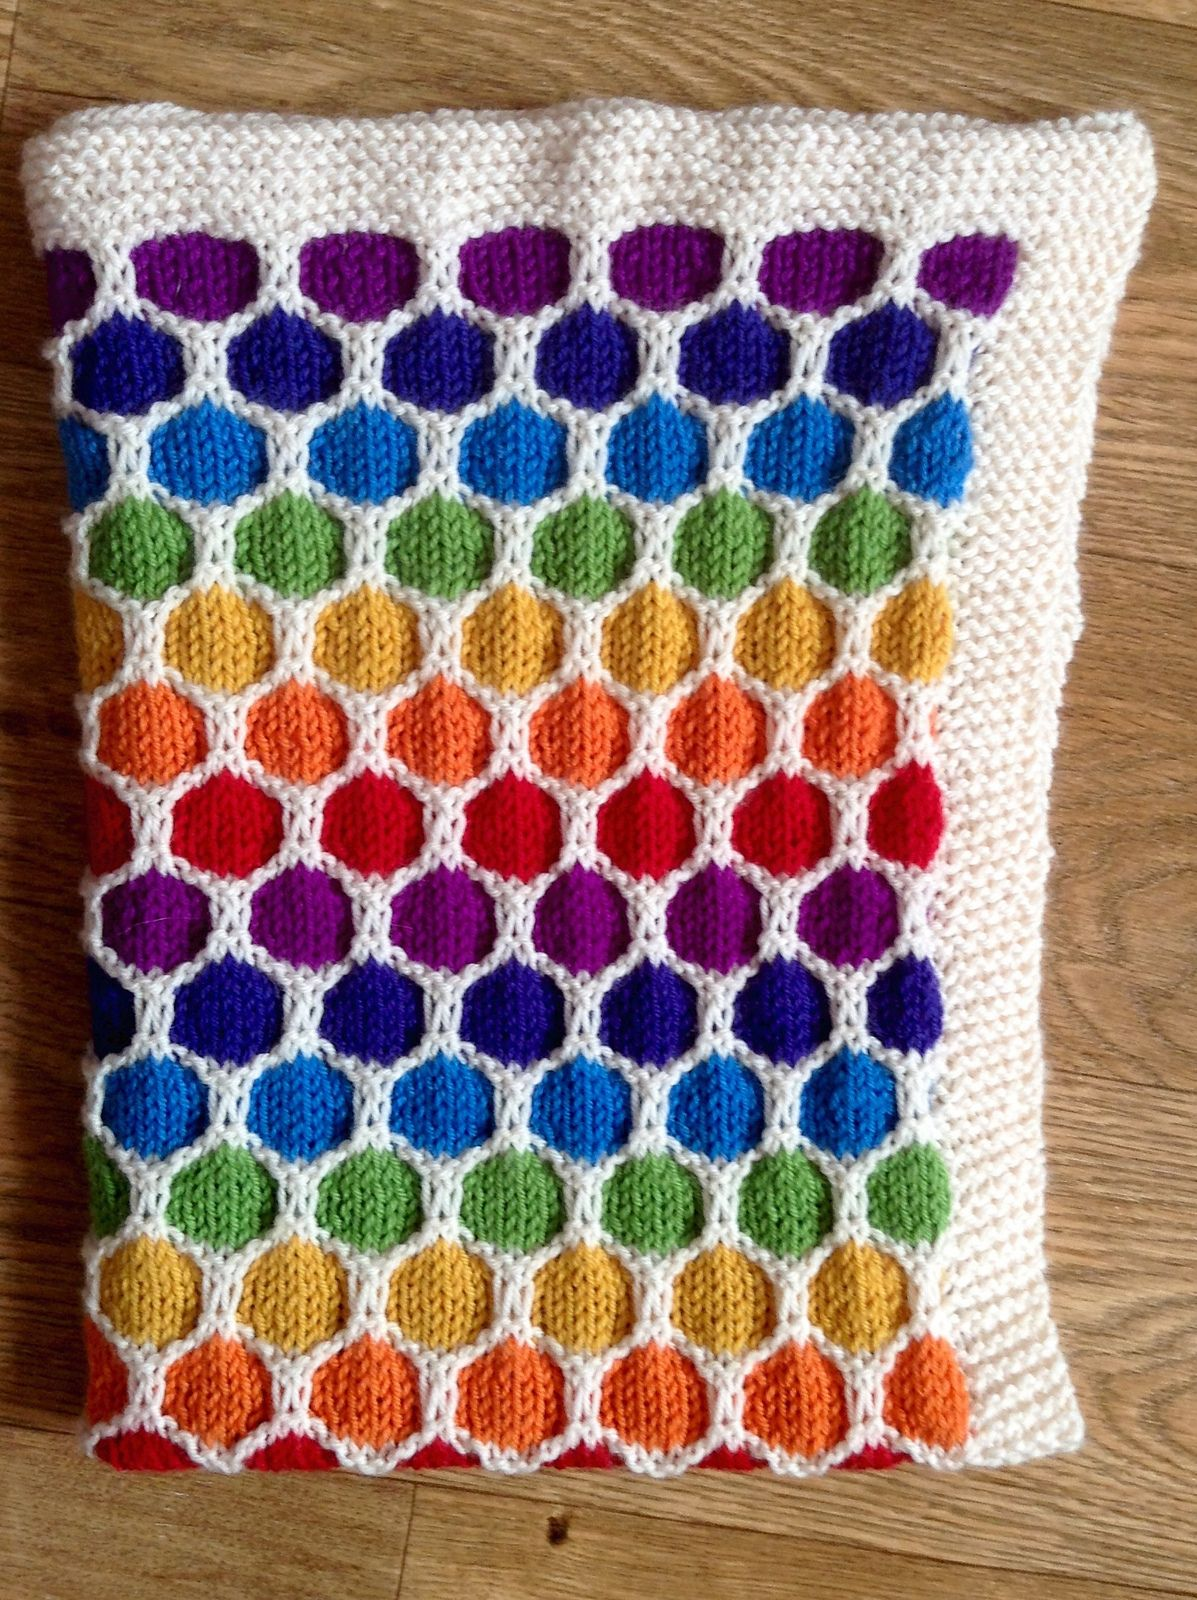 Free Knitting Patterns for Baby Blankets | Blanket, Knitting ...